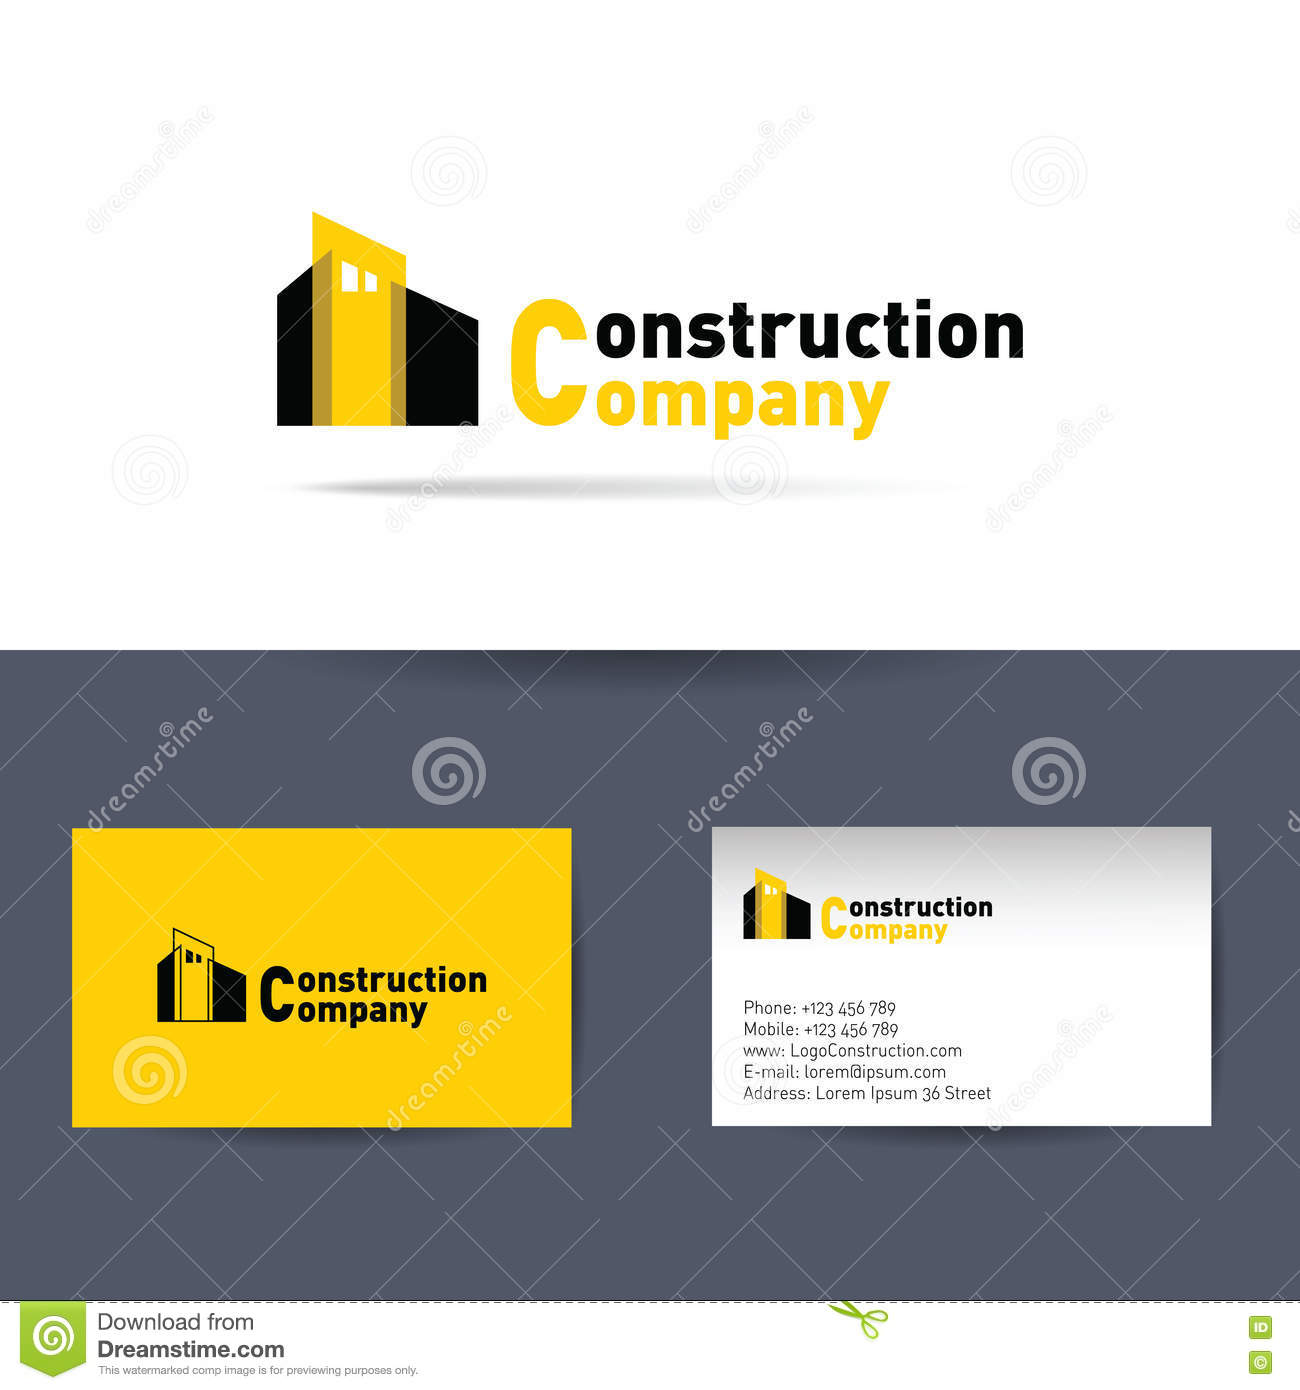 Construction company business card template stock vector construction company business card template cheaphphosting